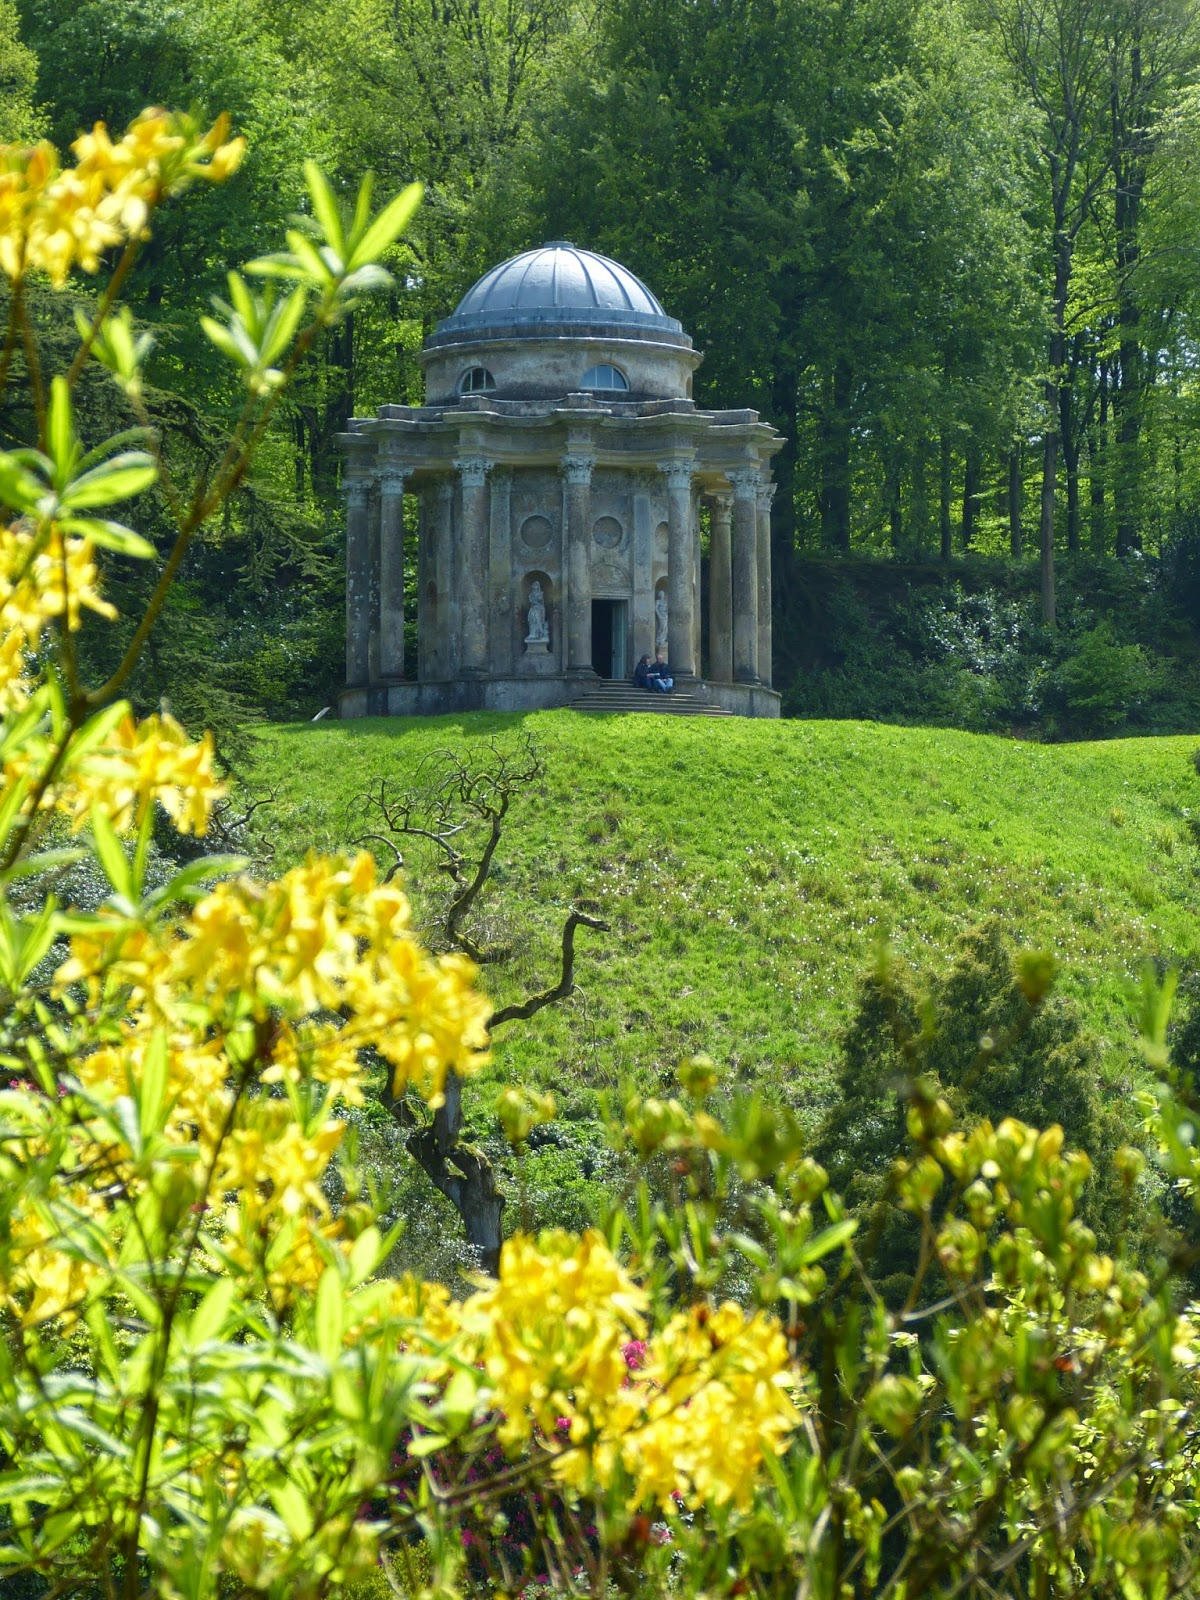 The Temple of Apollo in the gardens at Stourhead